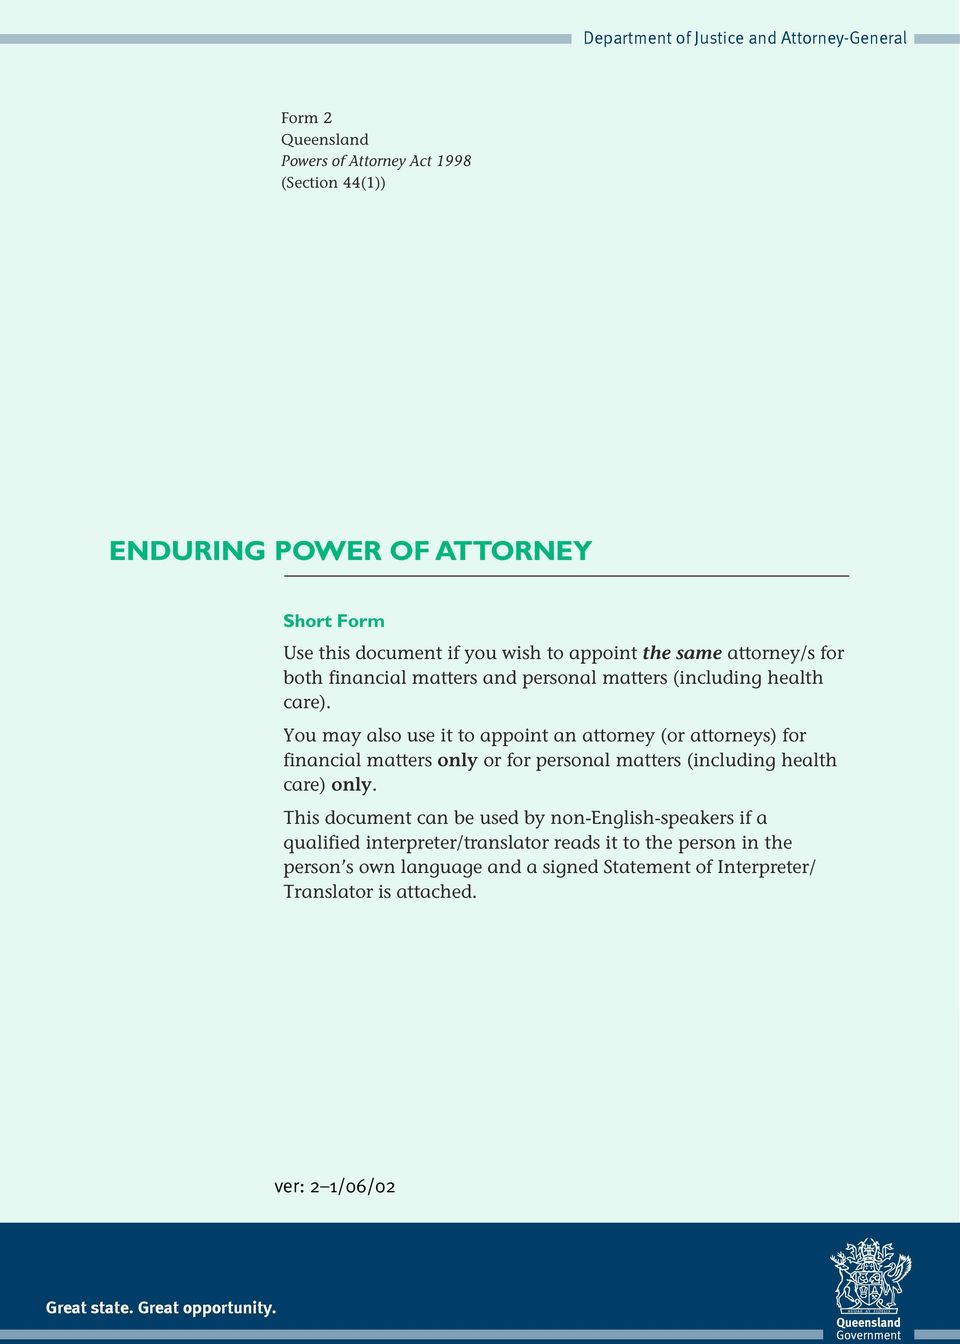 power of attorney form queensland  ENDURING POWER OF ATTORNEY ENDURING POWER OF ATTORNEY. ver ...